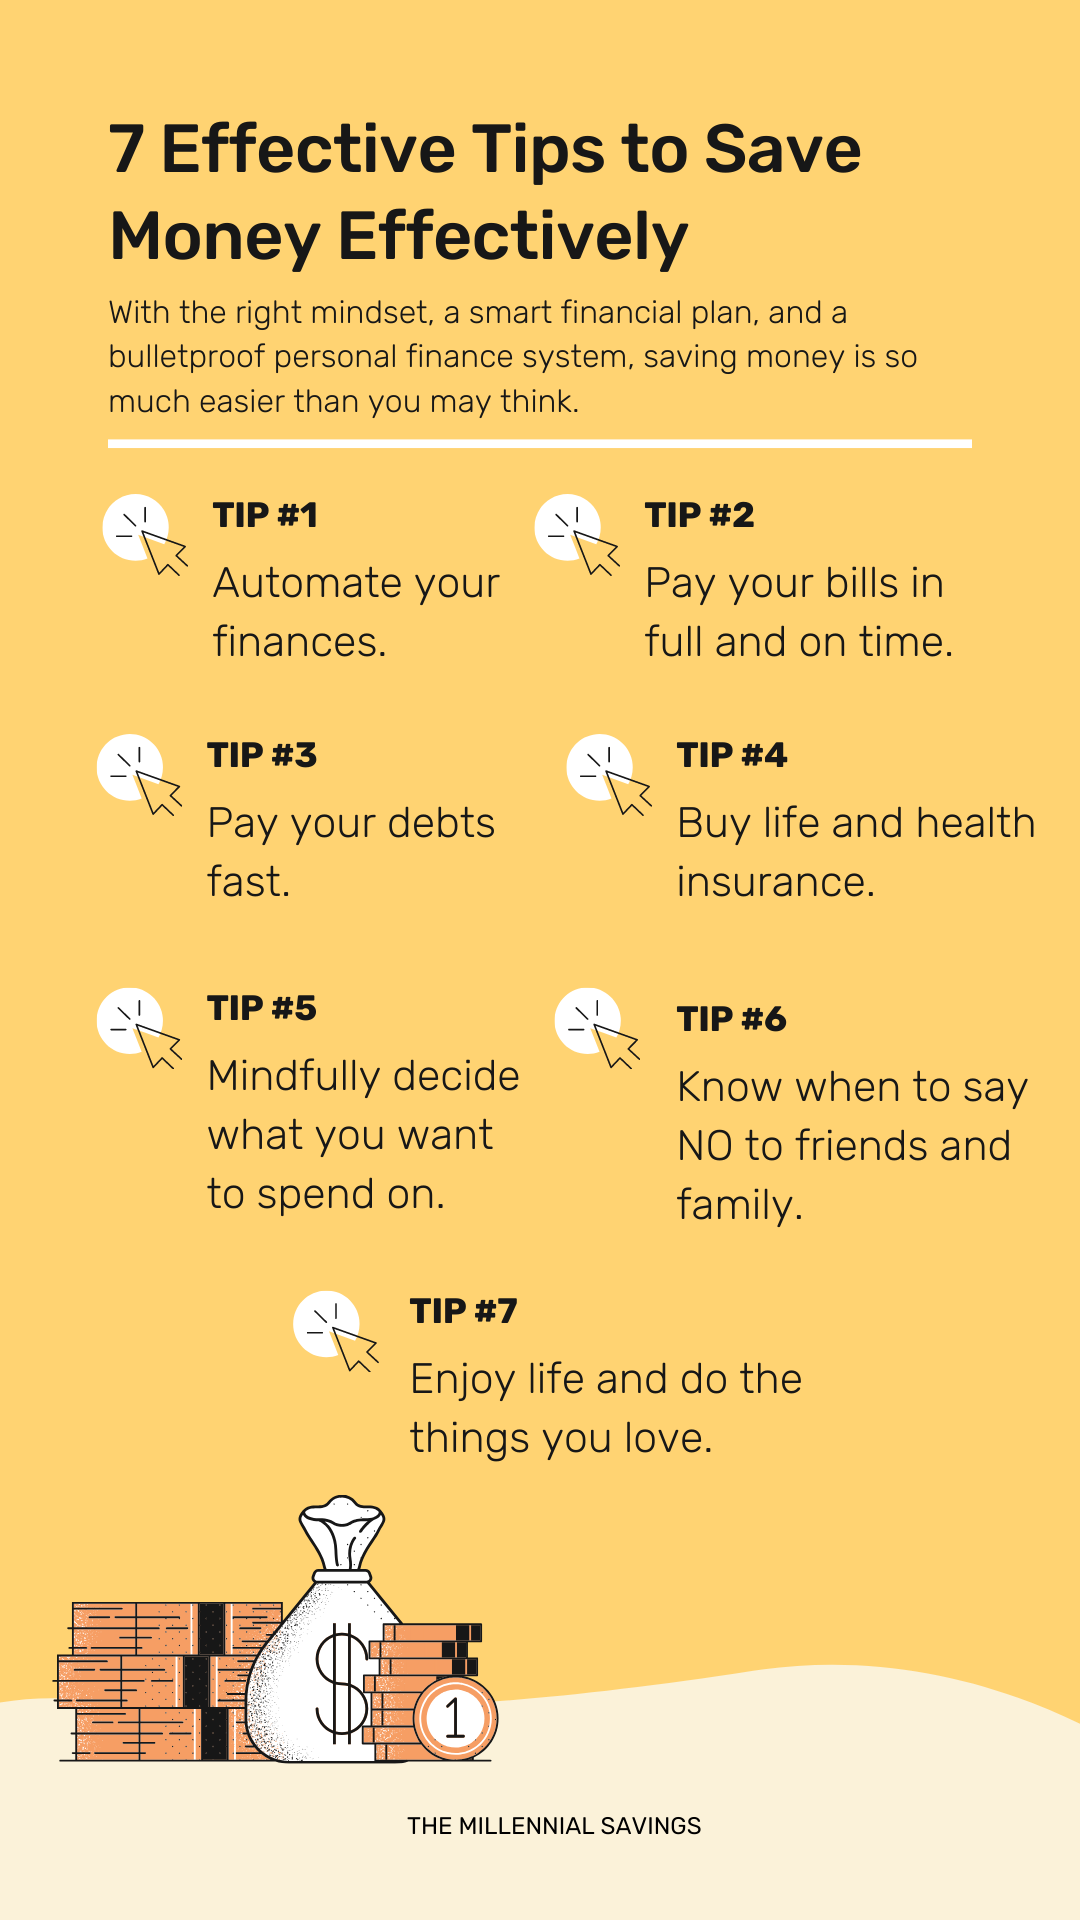 7 EFFECTIVE TIPS TO SAVE MONEY EFFECTIVELY